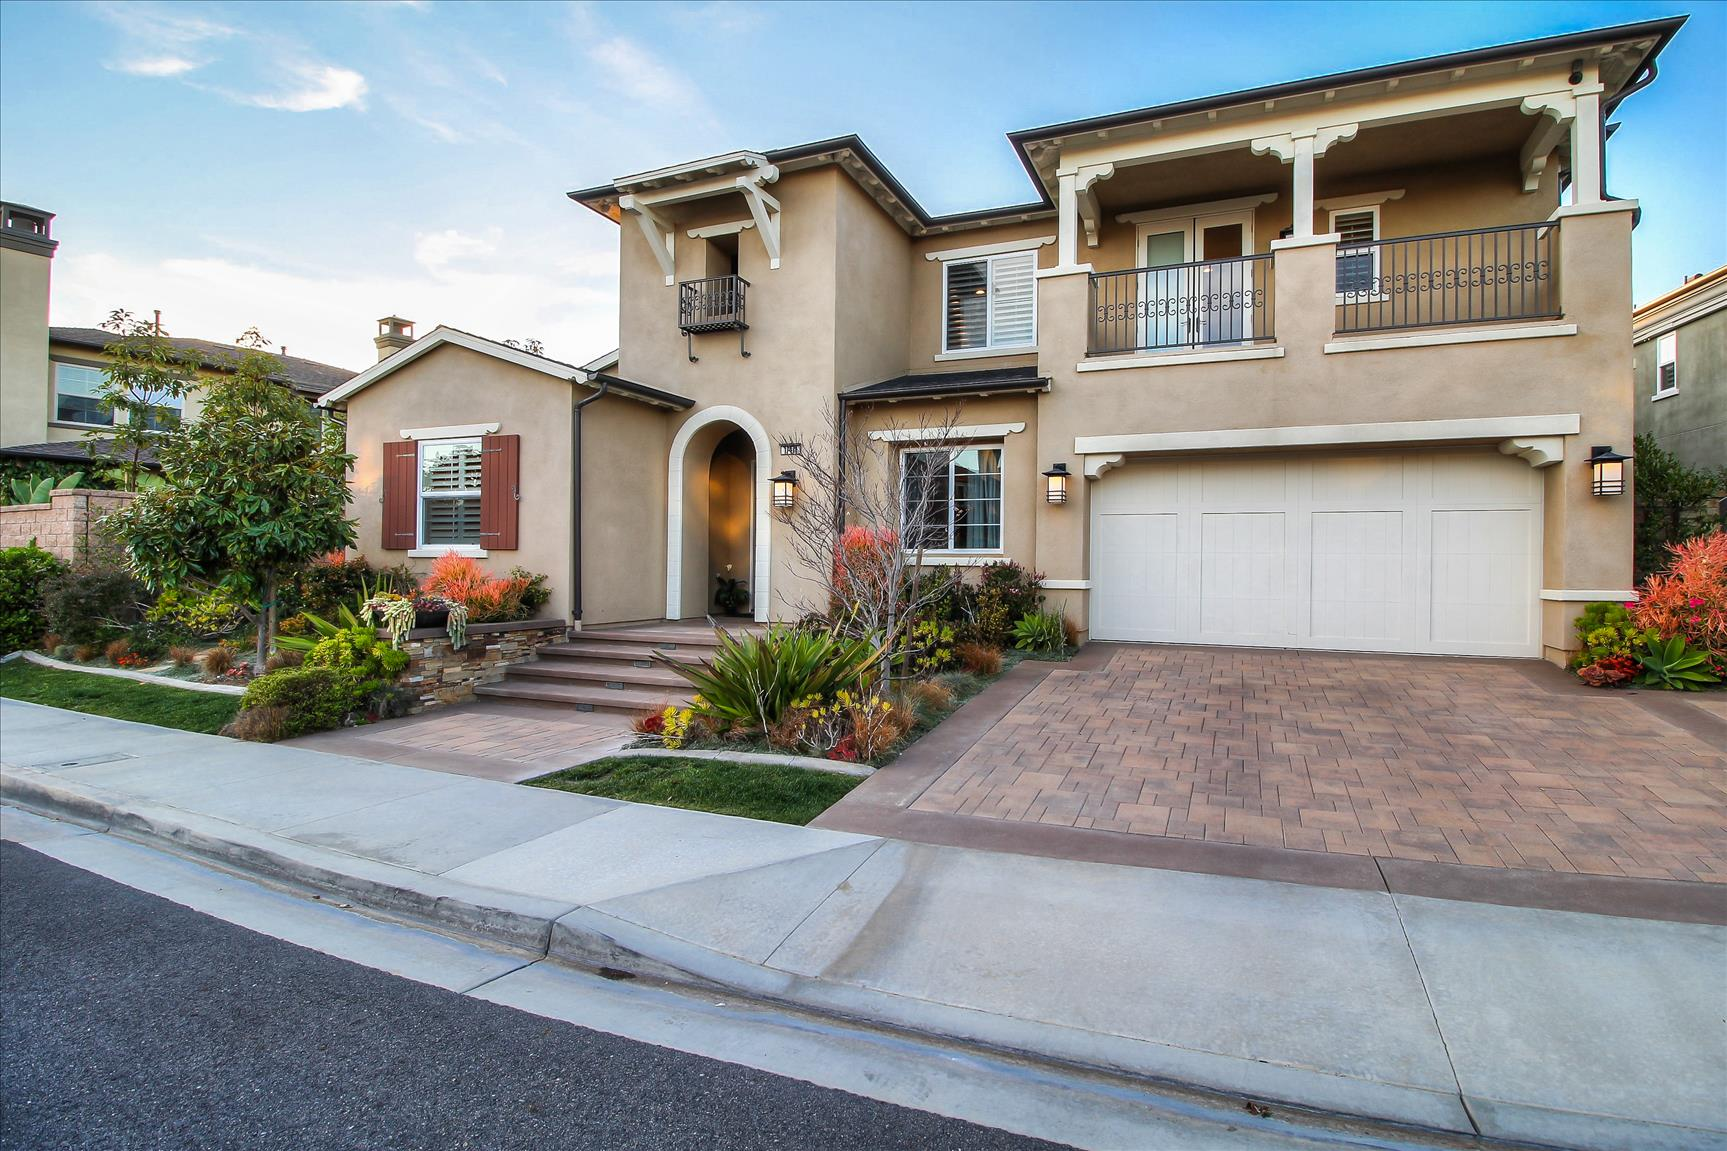 17471 Kennebunk Ln, Huntington Beach, CA  926494.jpg